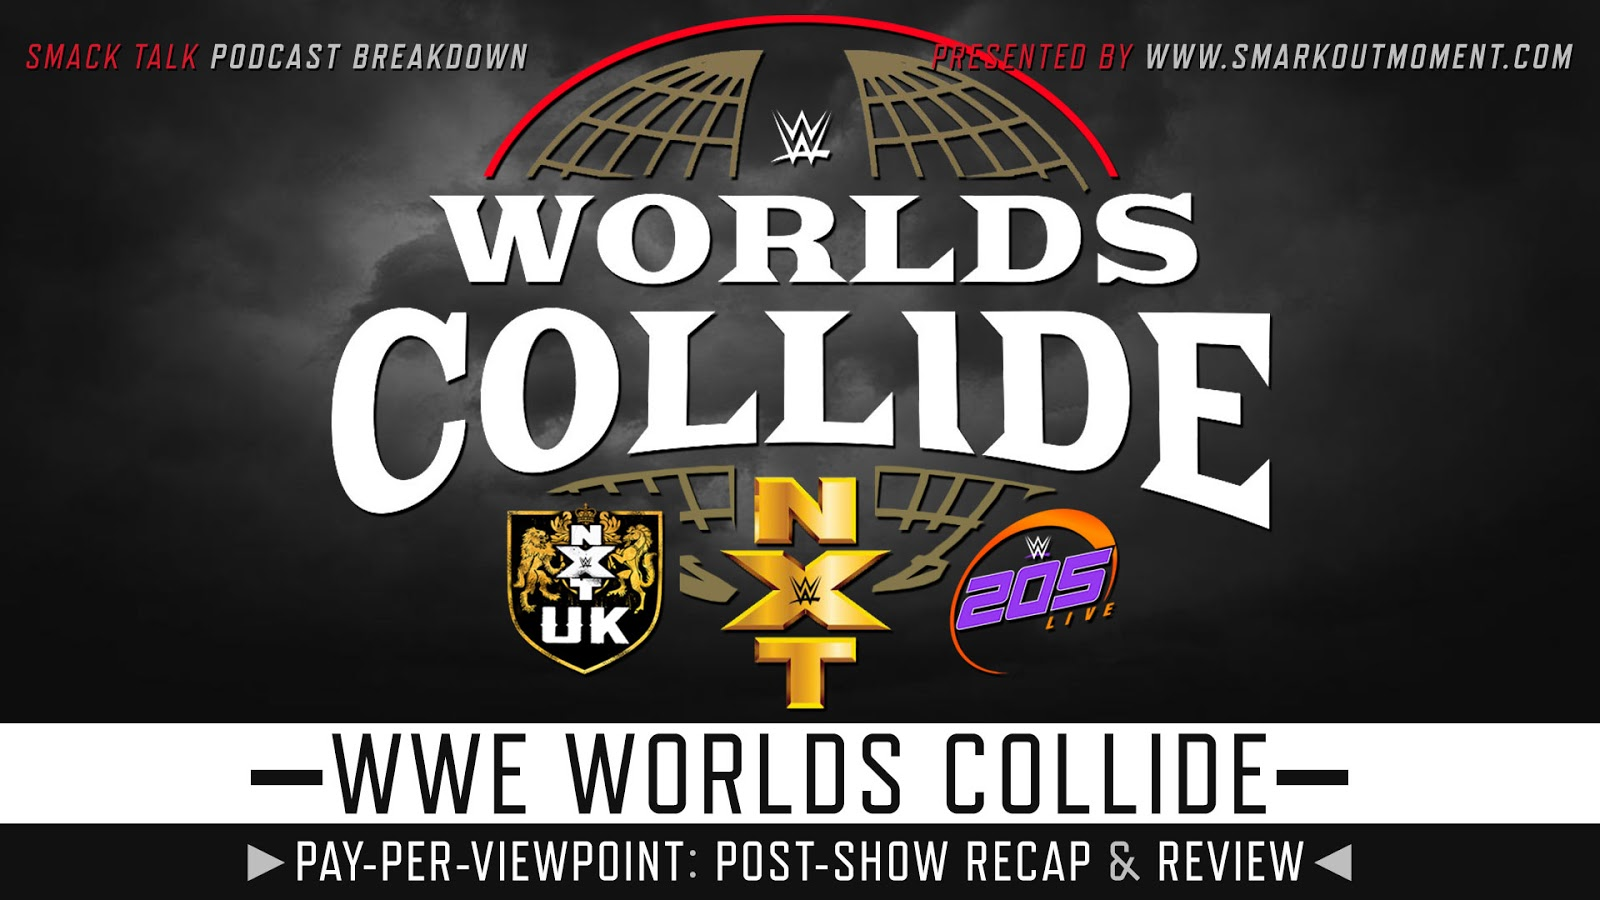 WWE Worlds Collide 2019 Recap and Review Podcast